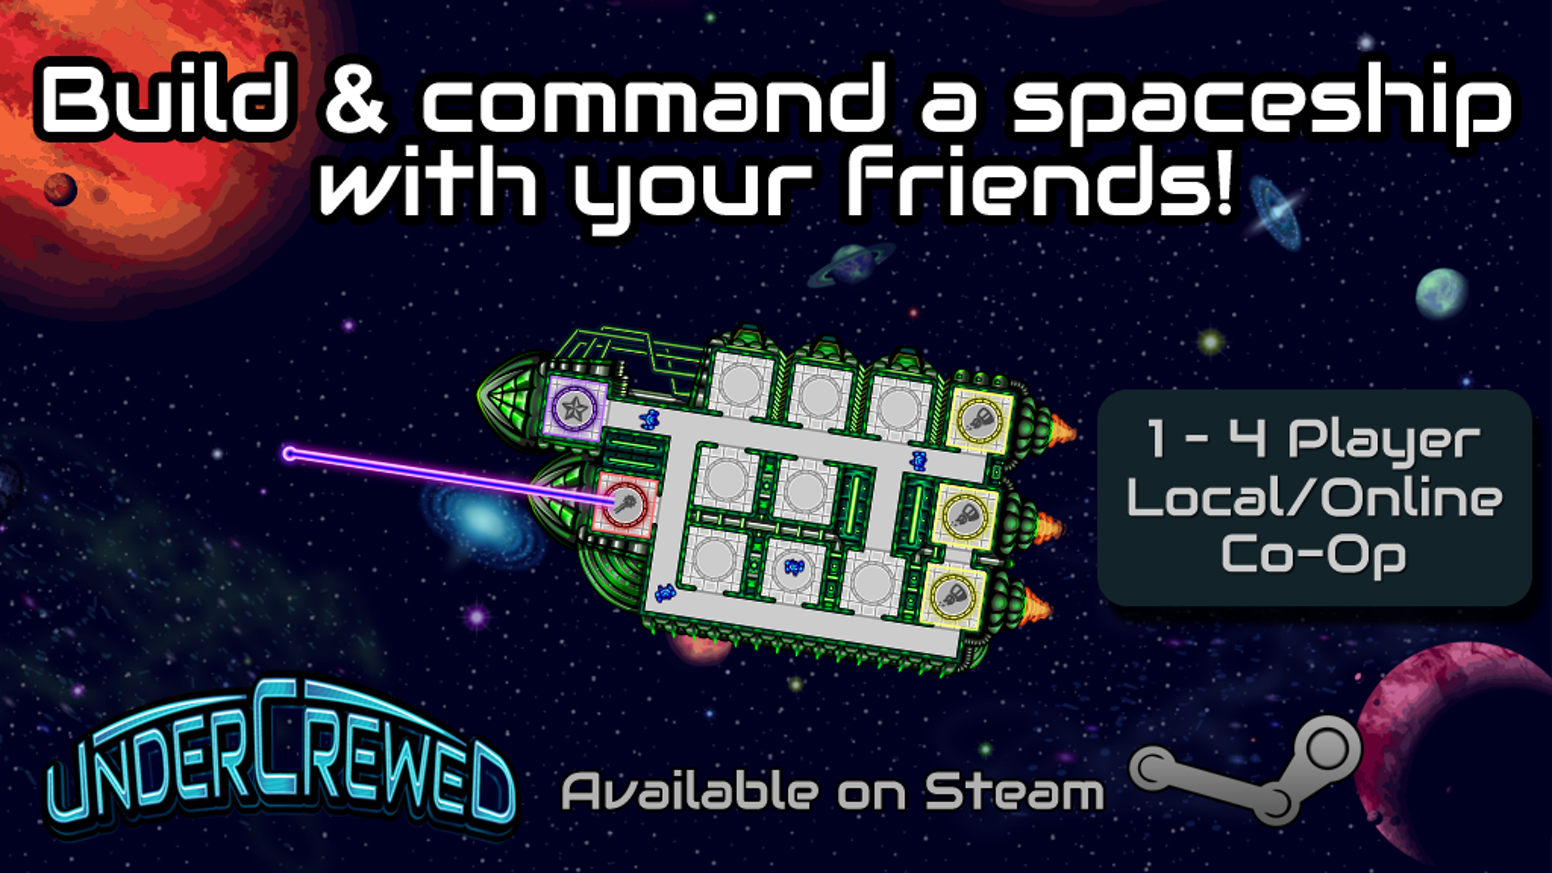 You are the last 4 survivors on your spaceship! Can you and your team customise and pilot the ship to its destination?